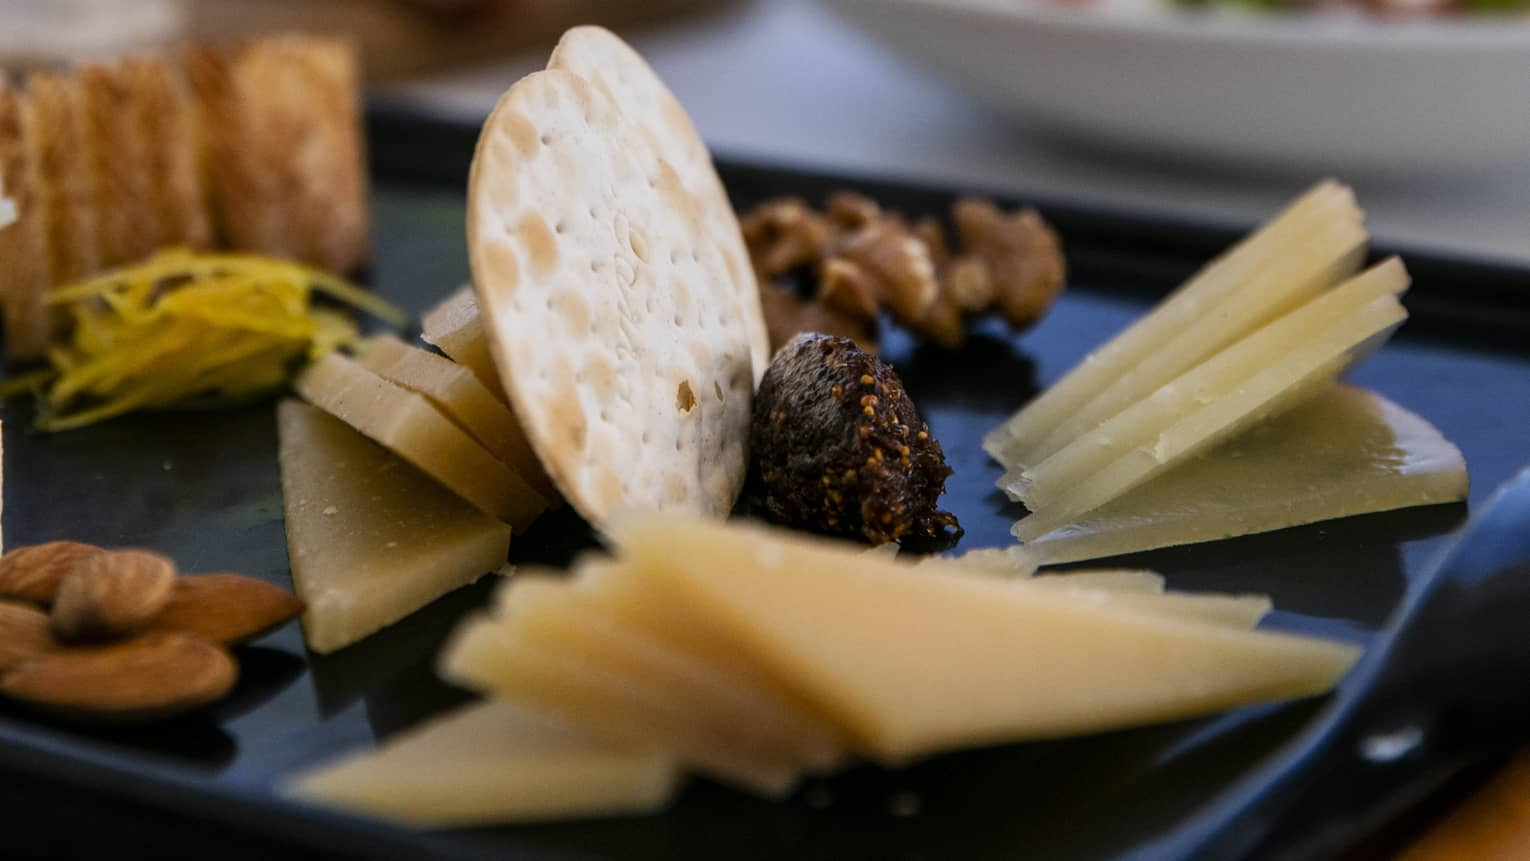 A charteurtie board with cheese, crackers, almonds and raisins